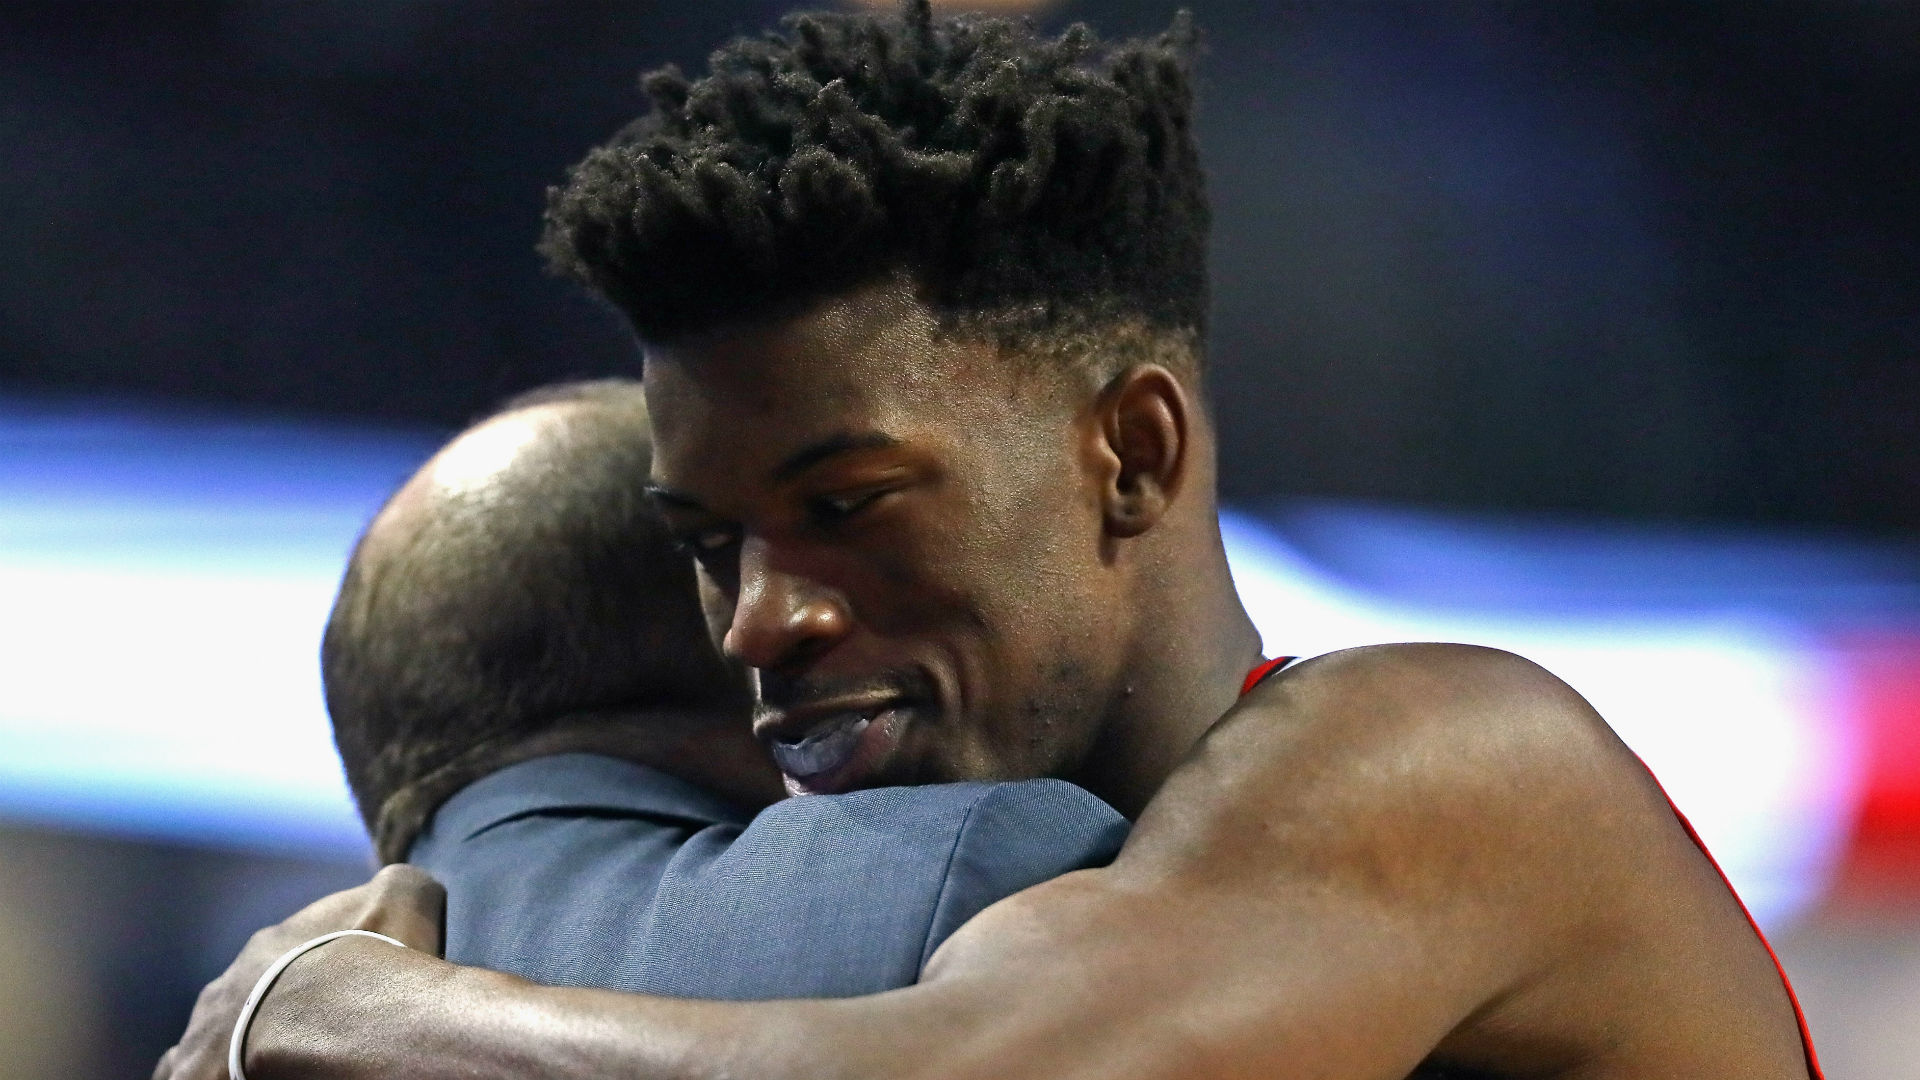 Jimmy Butler unhappy with Chicago Bulls after trade